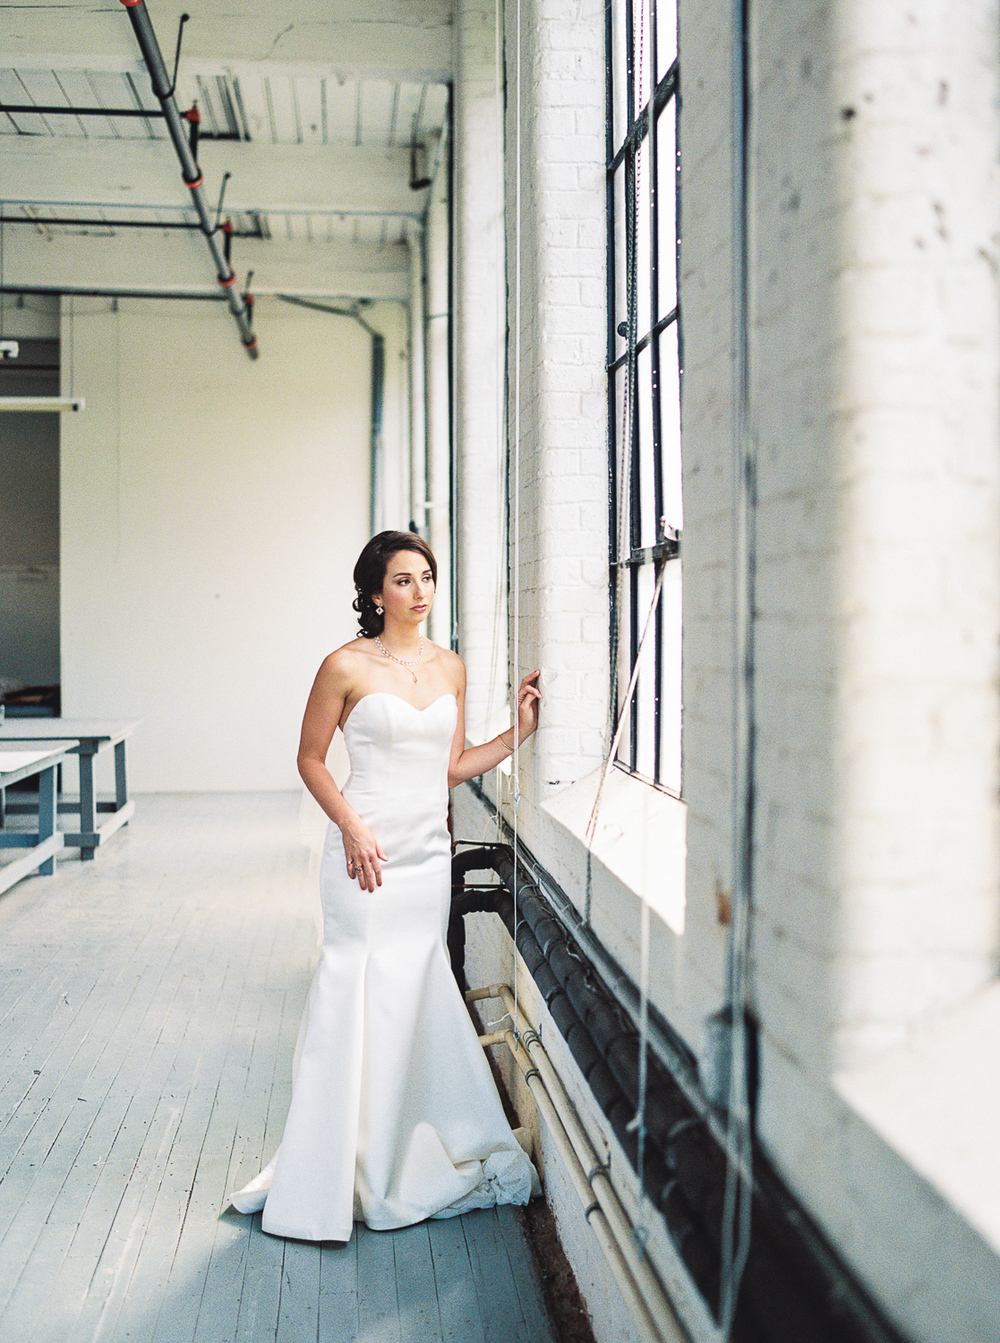 Greenville-Wedding-Photographer-Bridal-Portraits-52.jpg